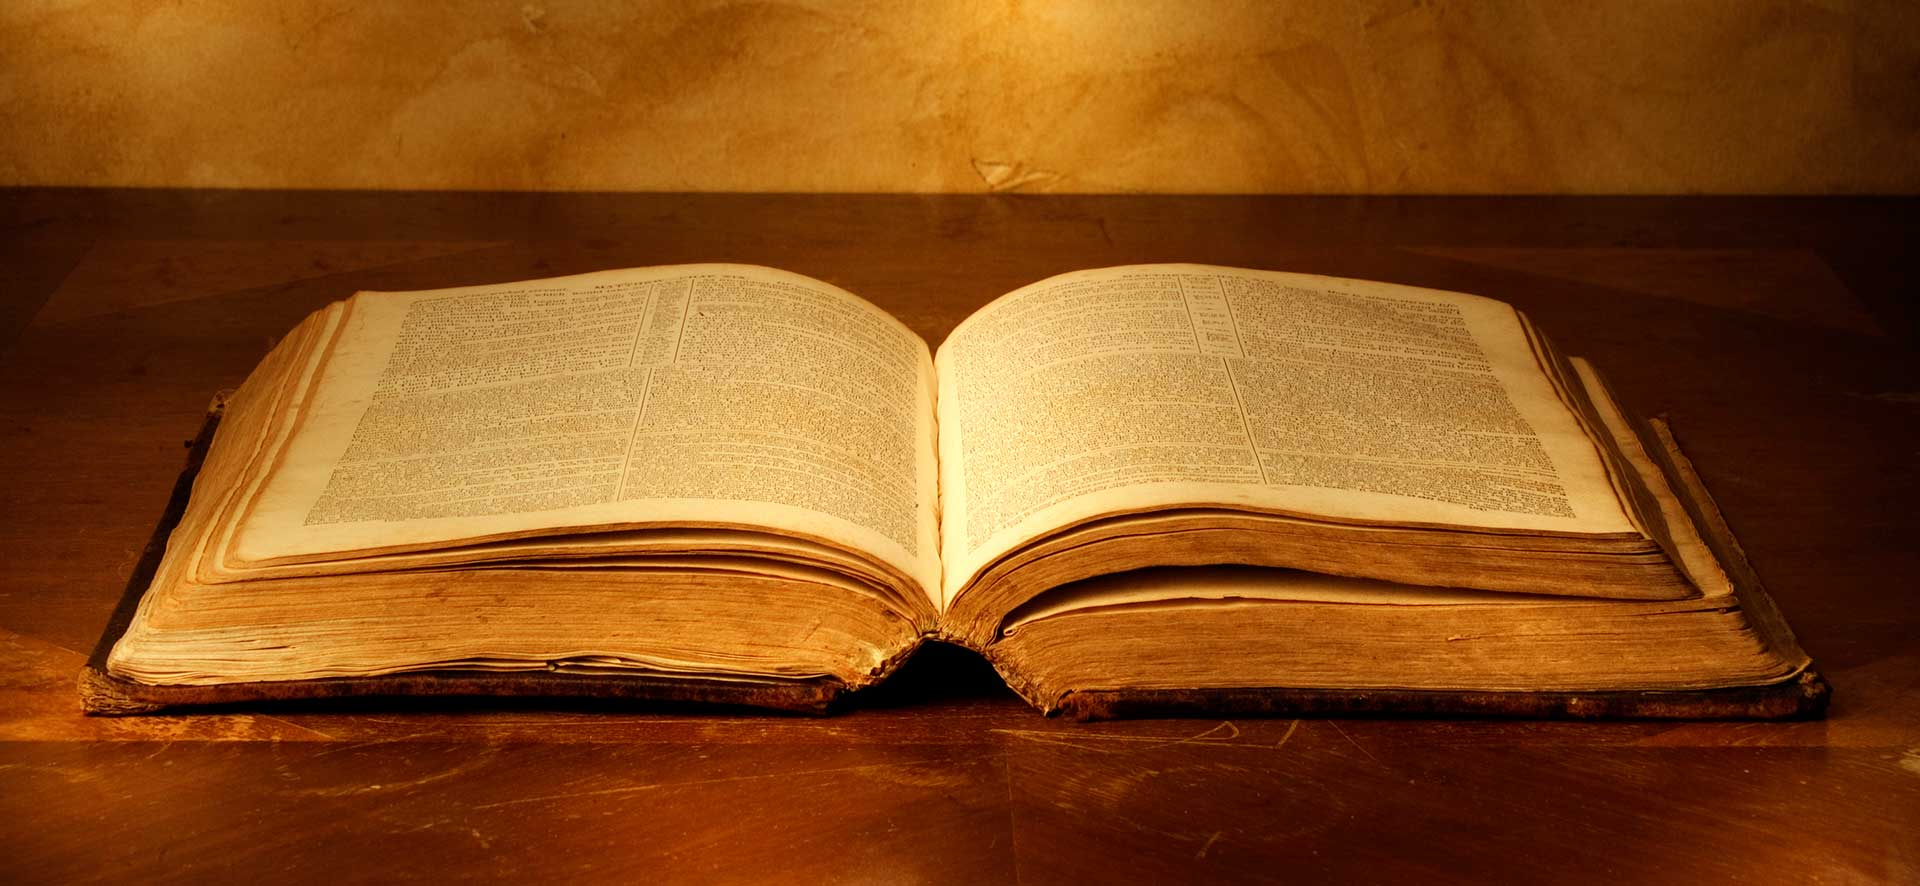 Background image css trackid sp 006 - Jpg 1920x886 Bible Preaching Backgrounds